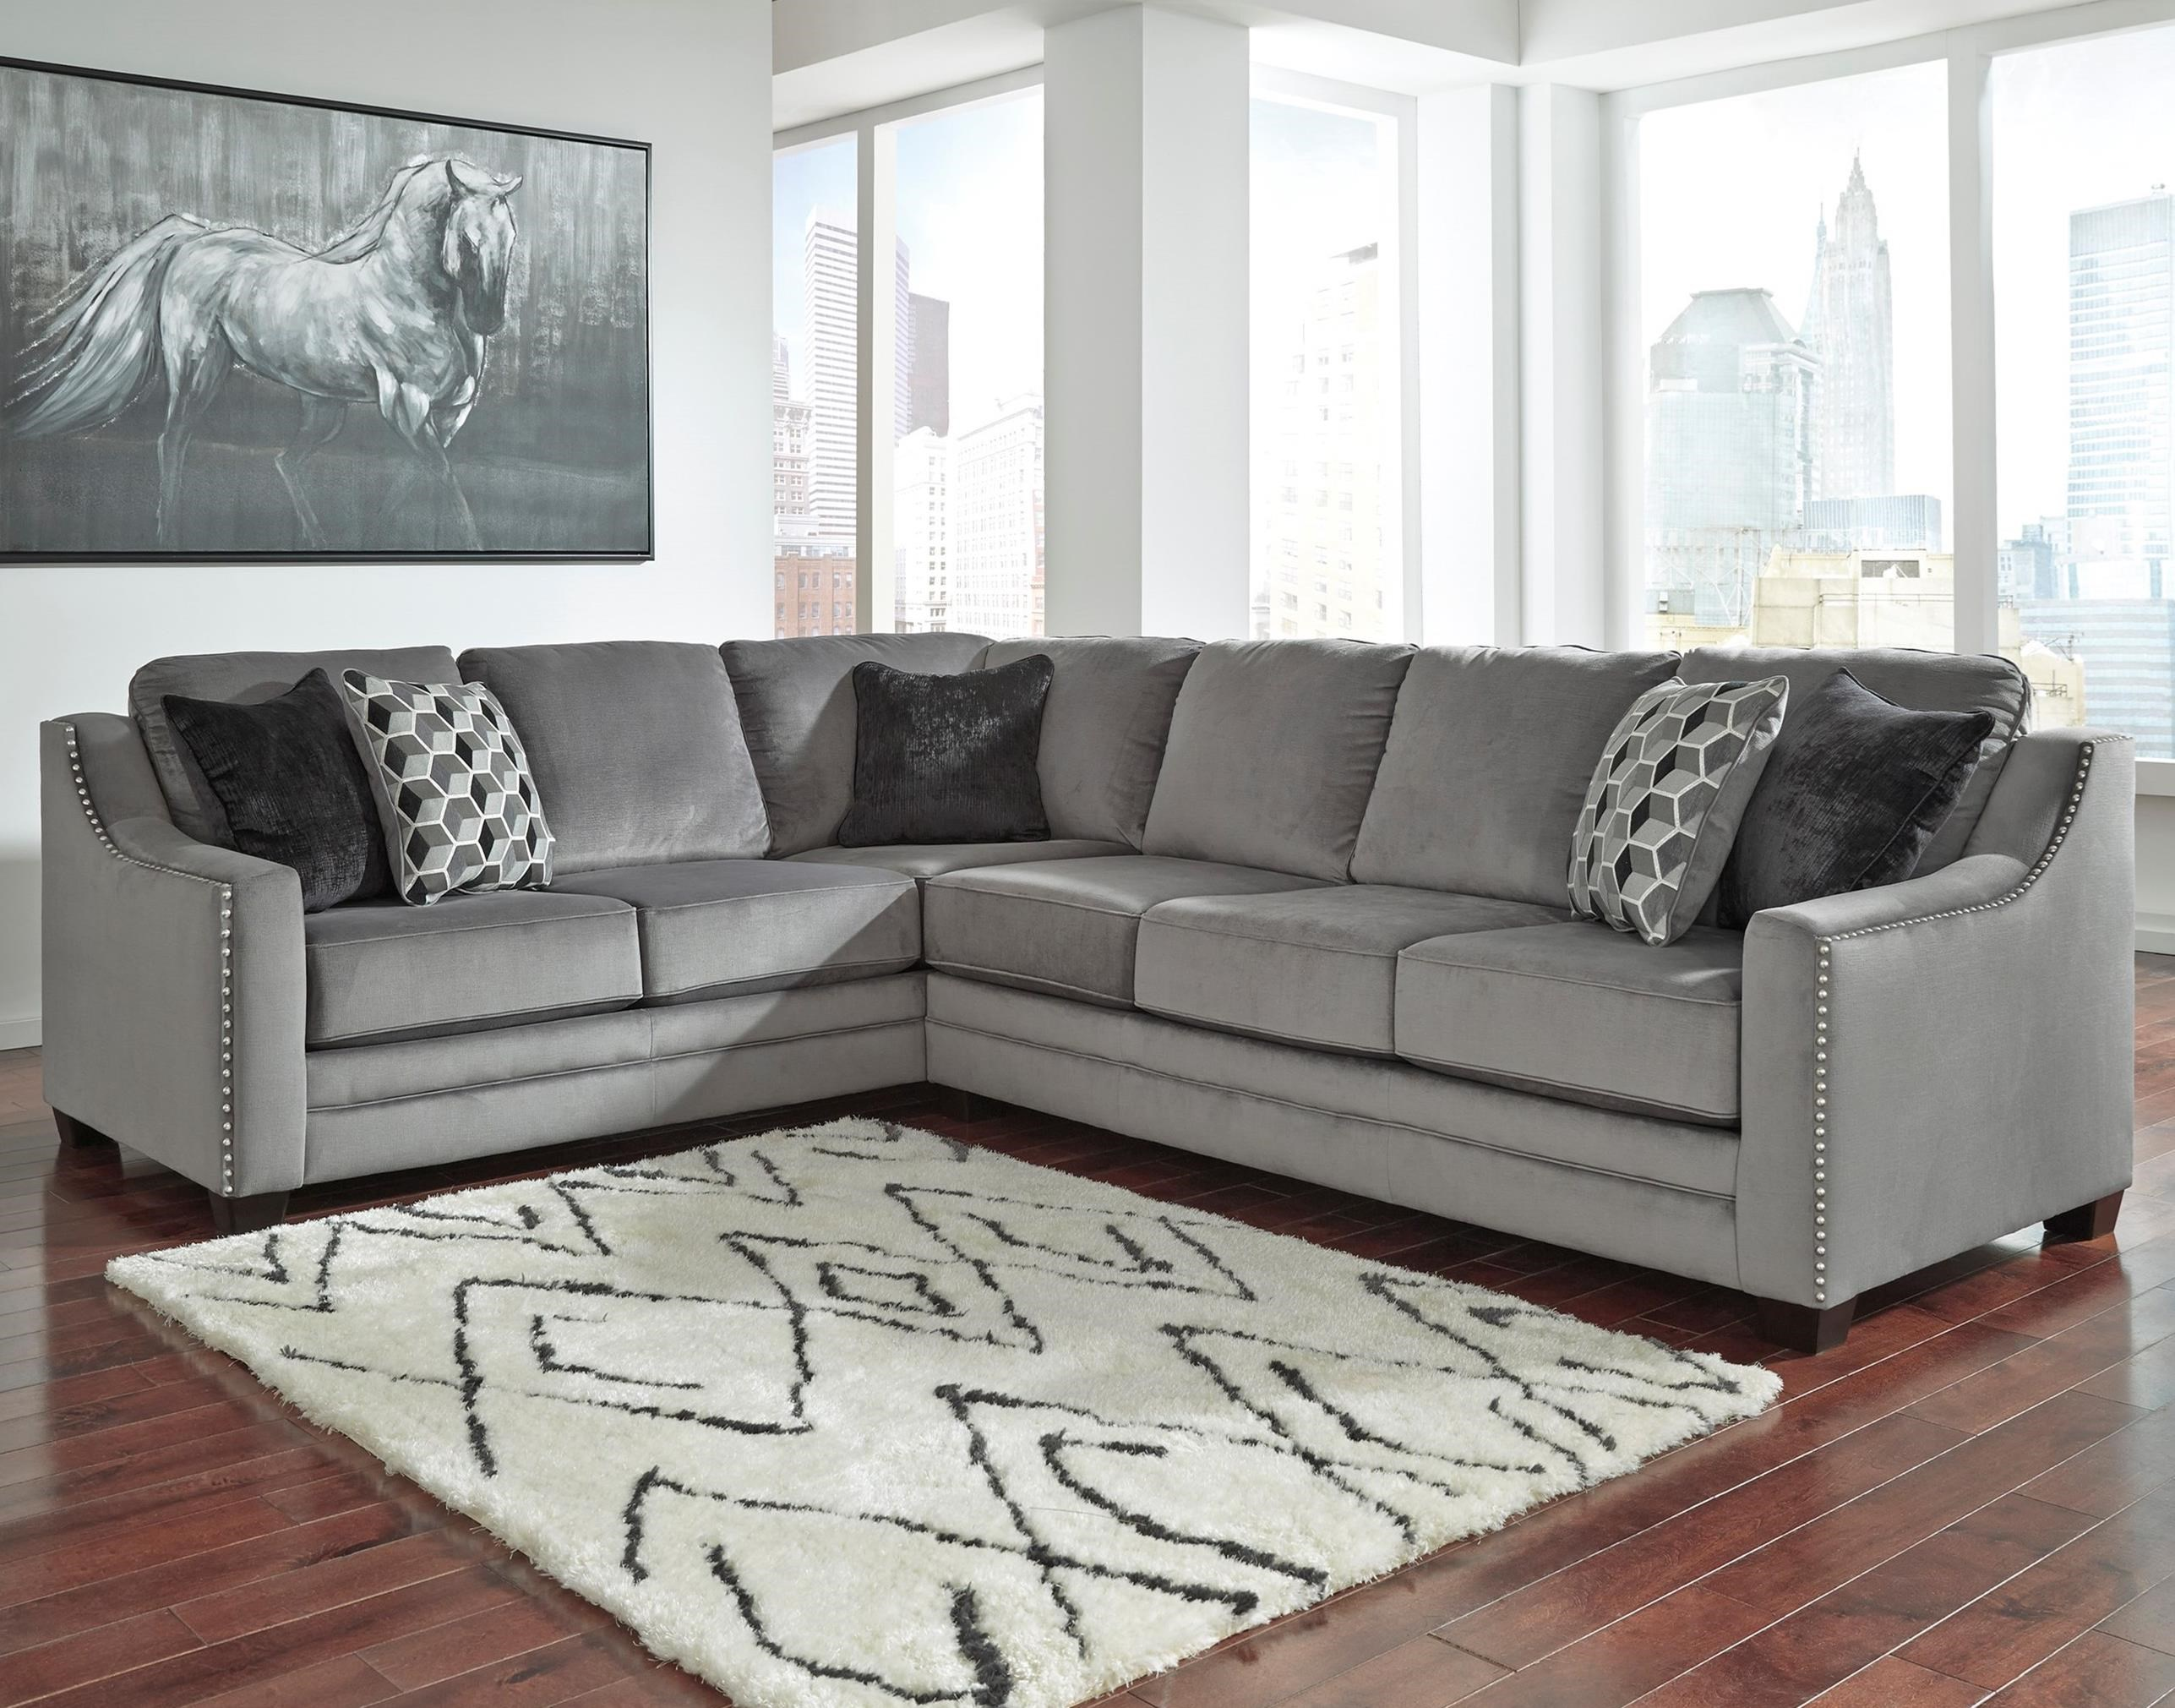 Benchcraft Bicknell Contemporary 2 Piece Sectional with Right Sofa